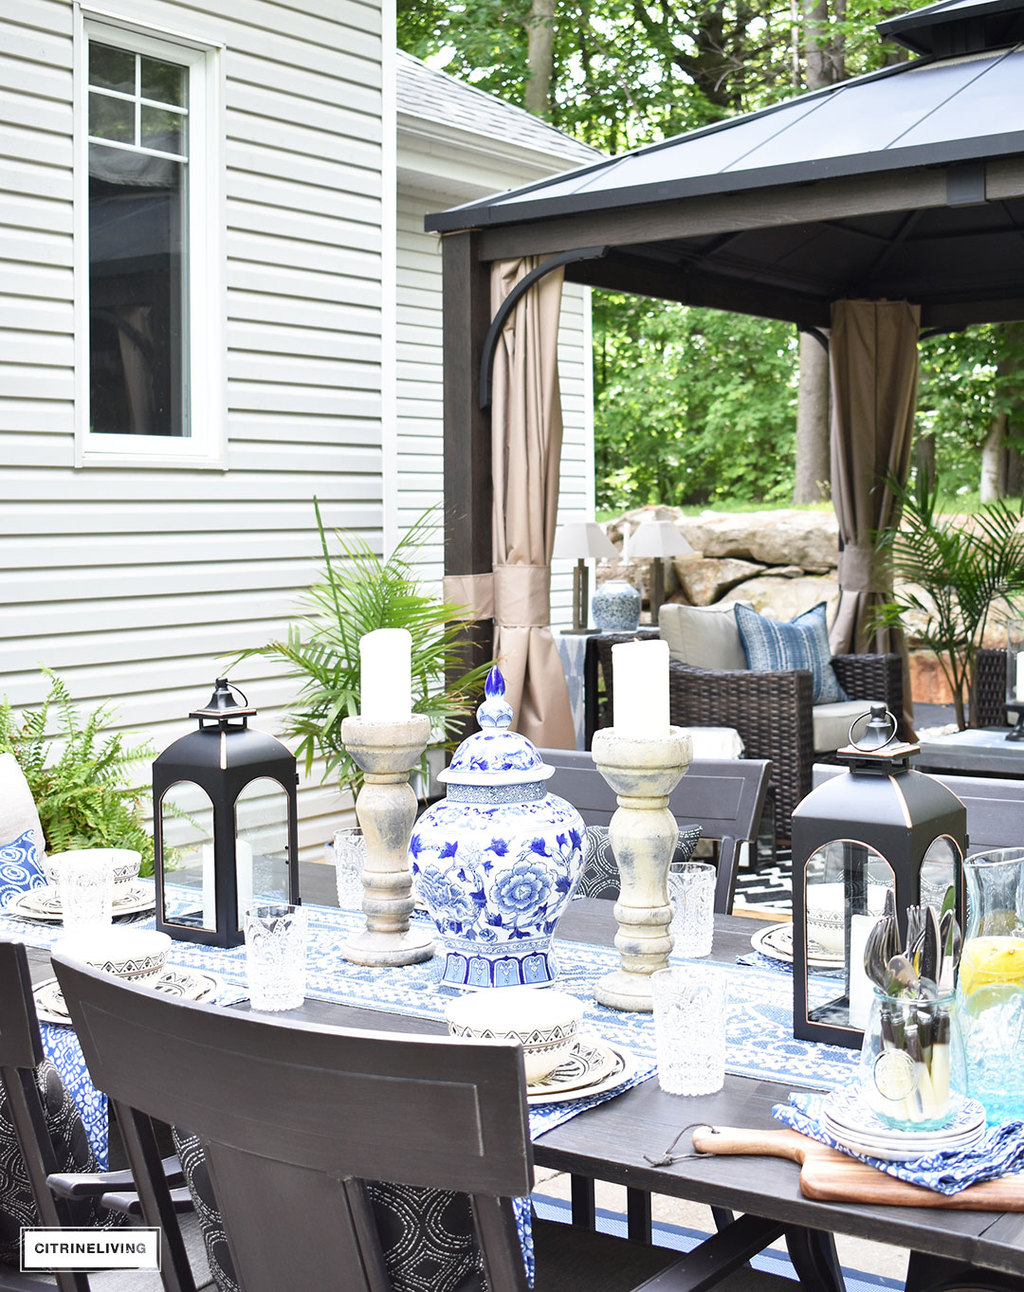 Backyard patio with dining and lounge areas - blue and white striped outdoor rugs and accents bring an indoor look outdoors.